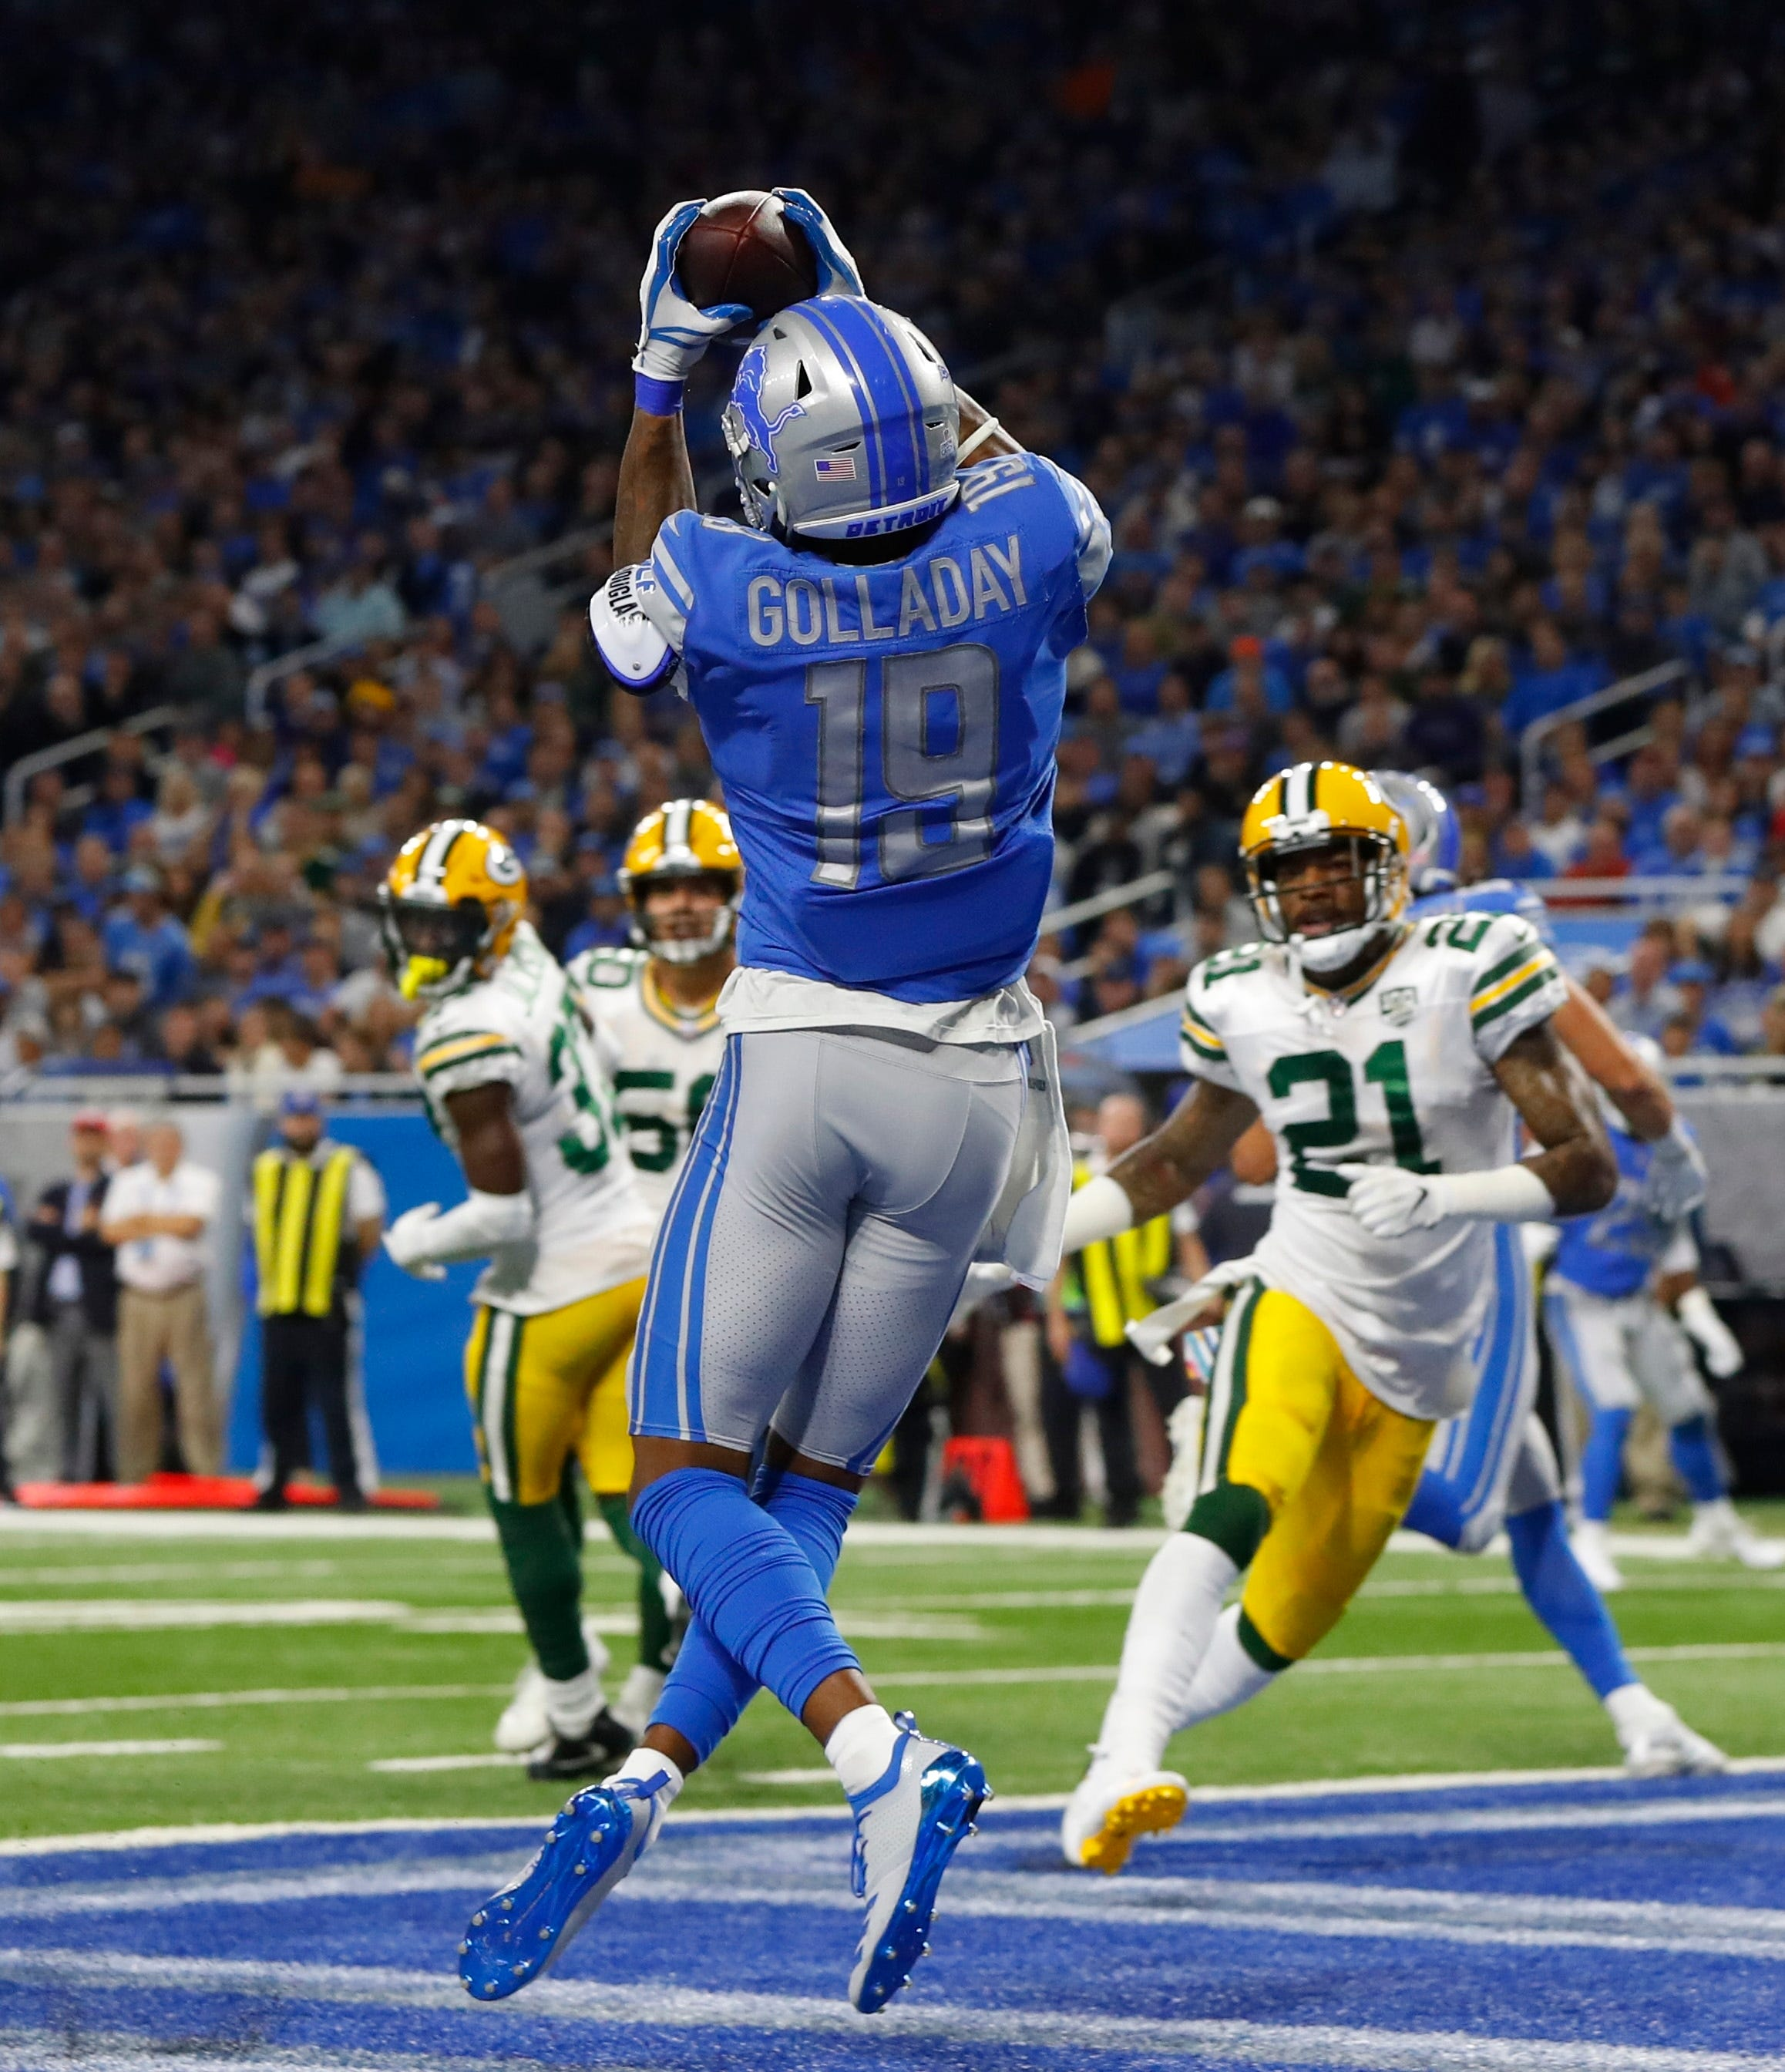 Golladay gives Detroit another impressive receiving threat